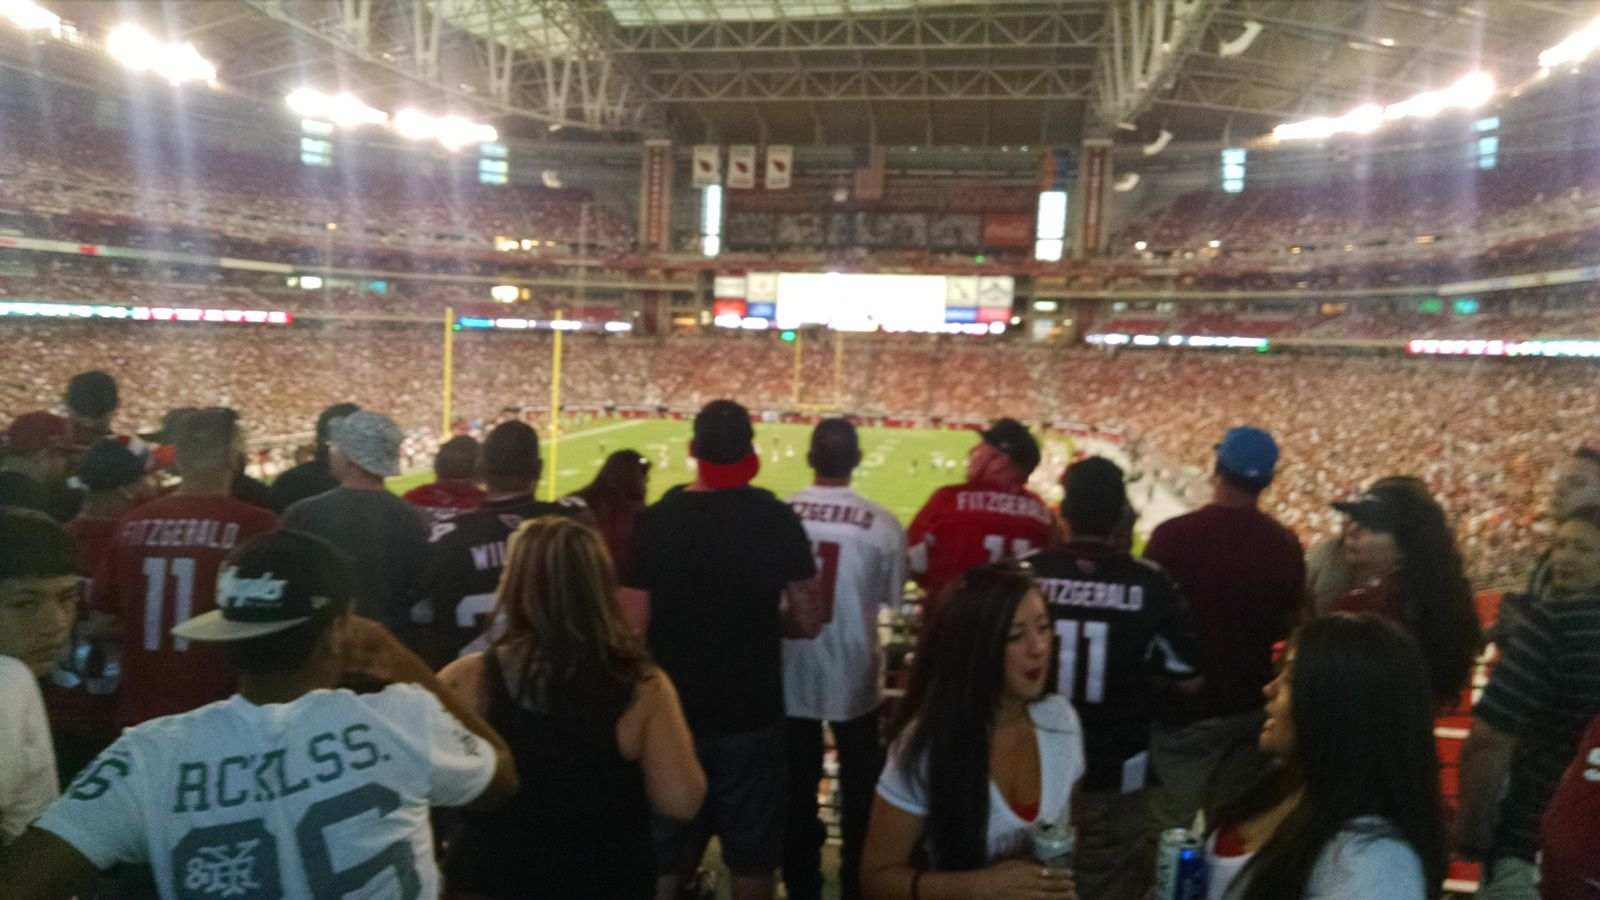 Arizona Cardinals Seat View for State Farm Stadium Standing Room Only, Row General